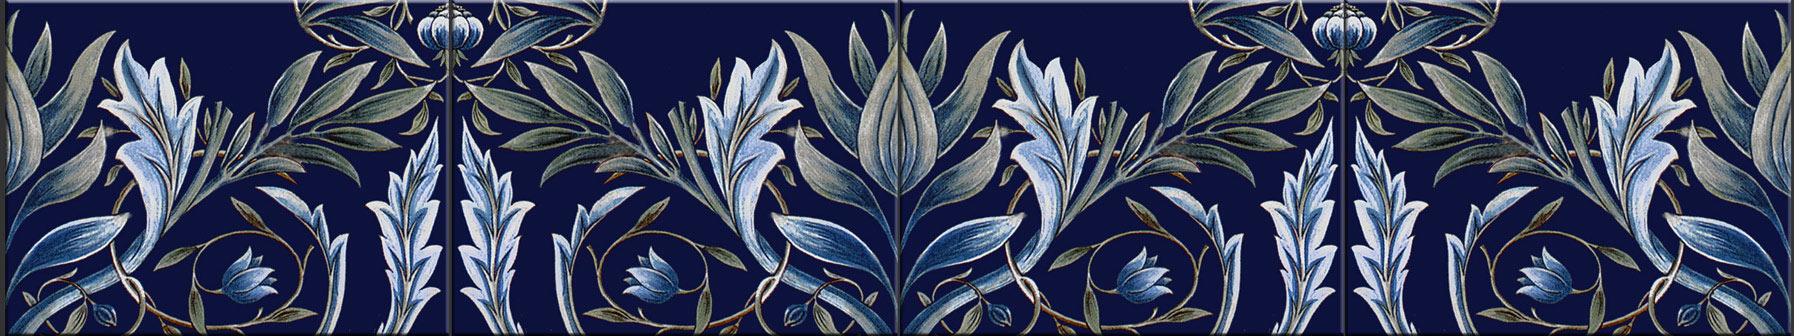 William Morris, Membland border tiles